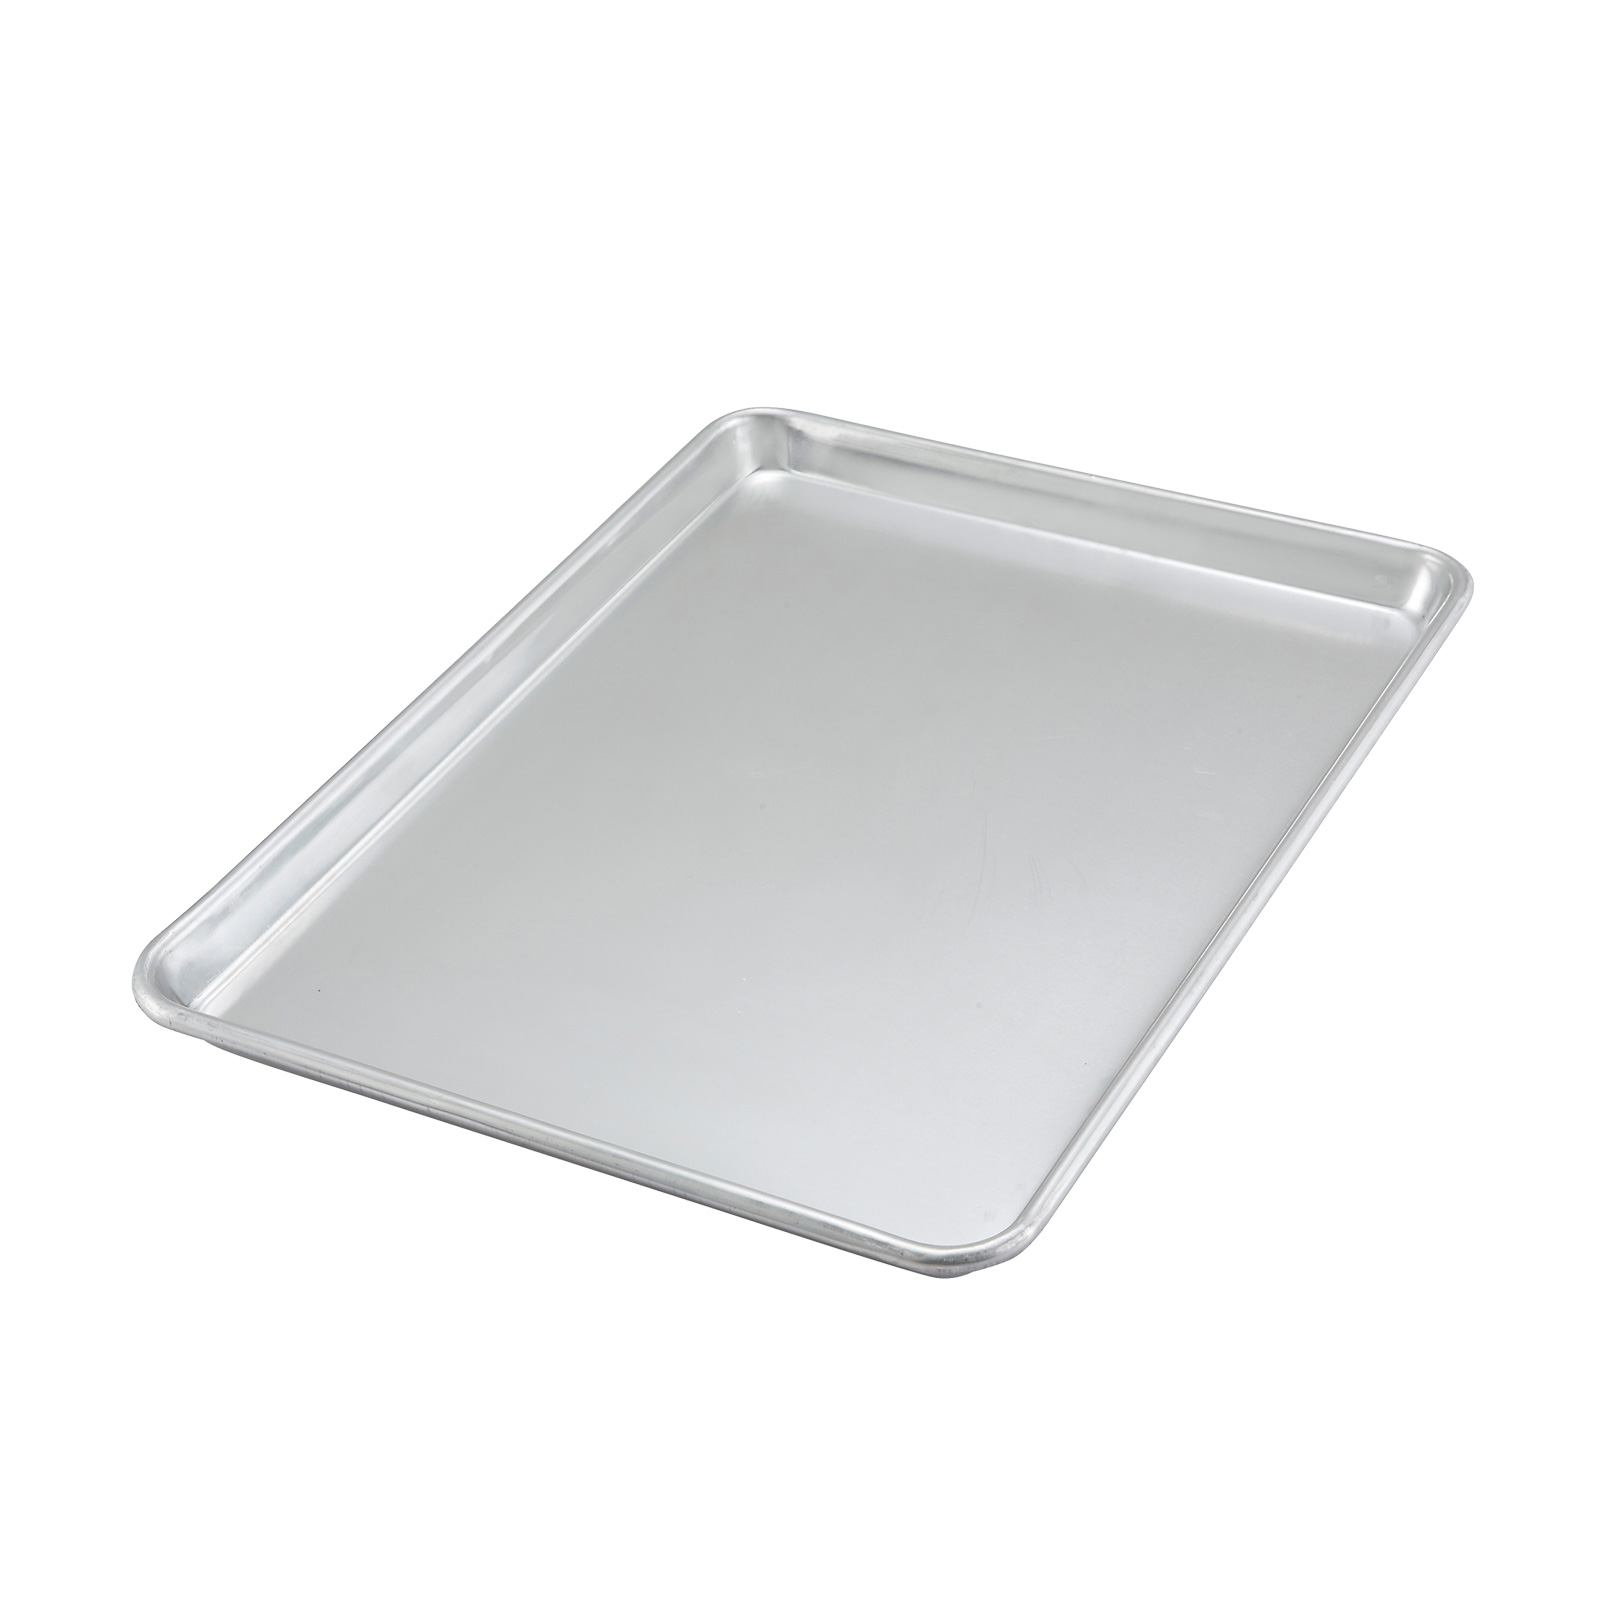 Winco ALXP-1813H bun / sheet pan